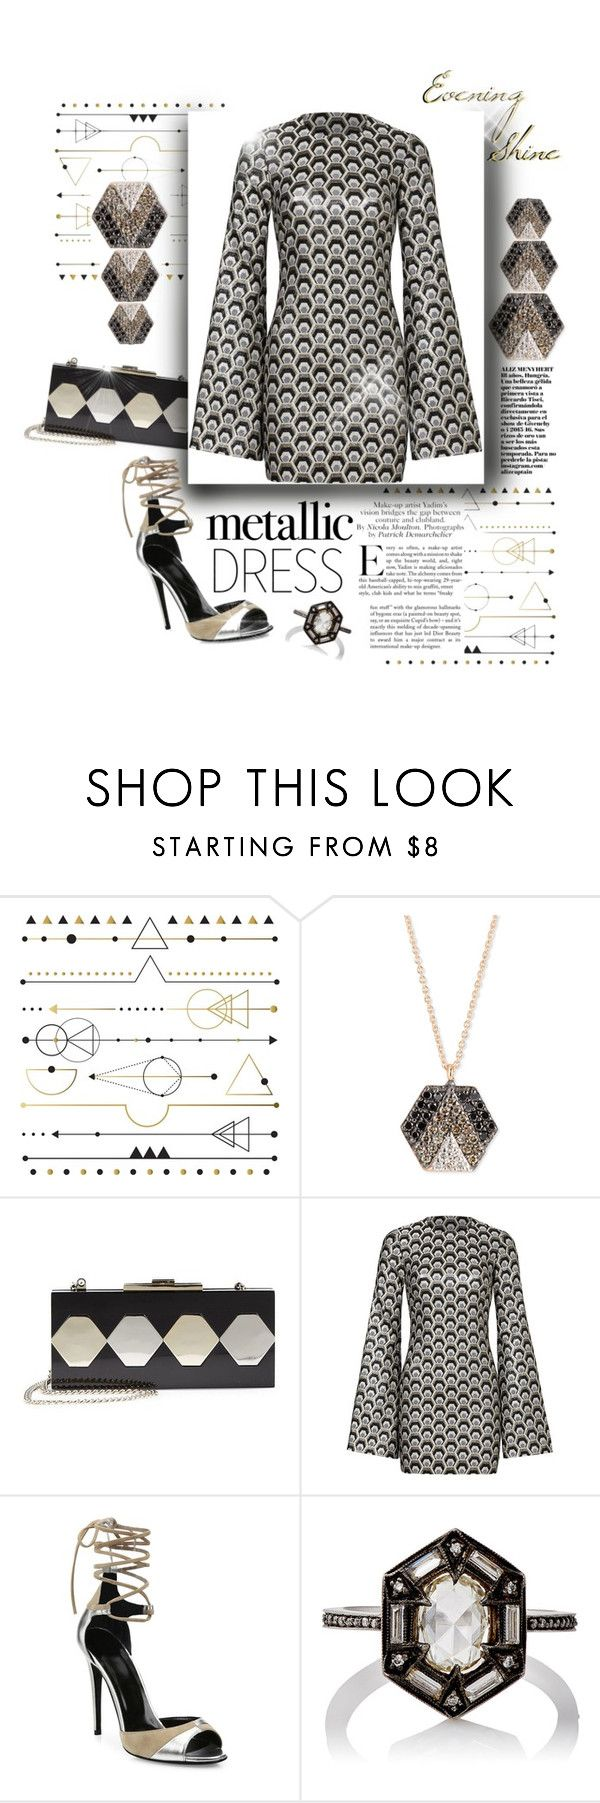 """""""Evening Shine"""" by mmk2k ❤ liked on Polyvore featuring Paperself, Kismet by Milka, Libertine, Halston Heritage, Rubin Singer, Pierre Hardy, Cathy Waterman, dress, metallic and metallicdress"""